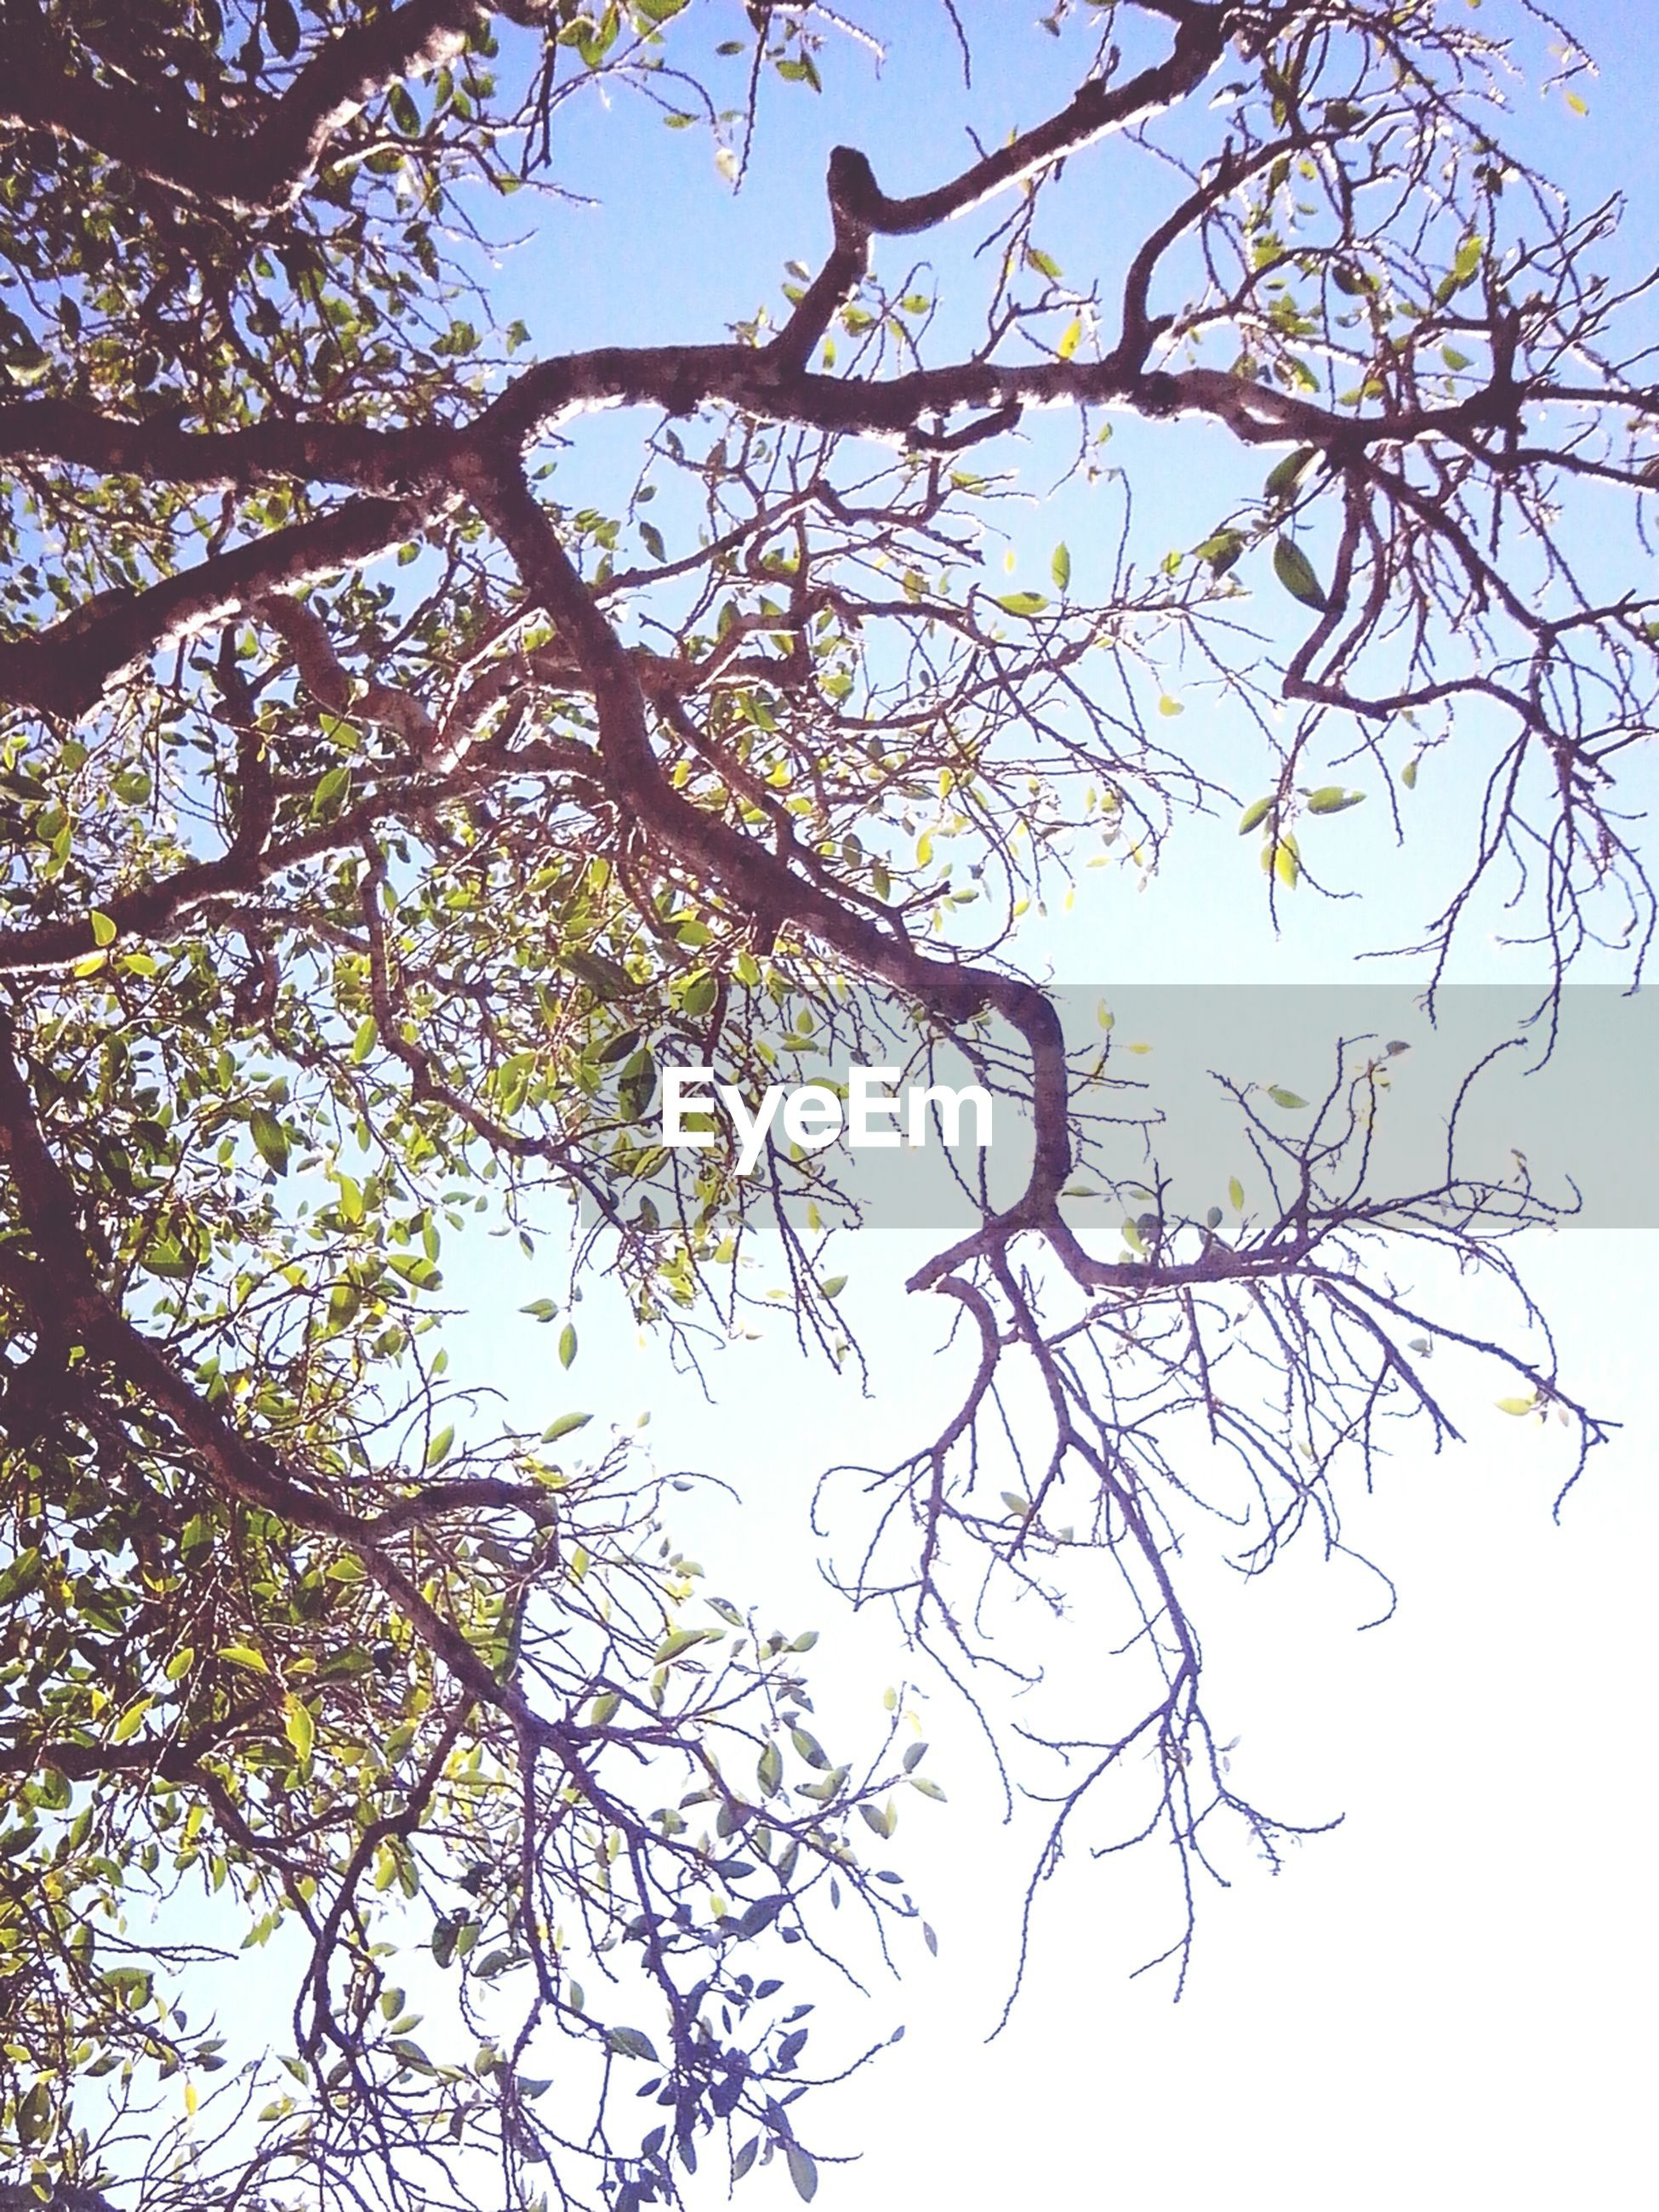 tree, low angle view, branch, clear sky, nature, growth, beauty in nature, sky, blue, tranquility, bare tree, day, outdoors, no people, scenics, sunlight, high section, twig, tranquil scene, leaf